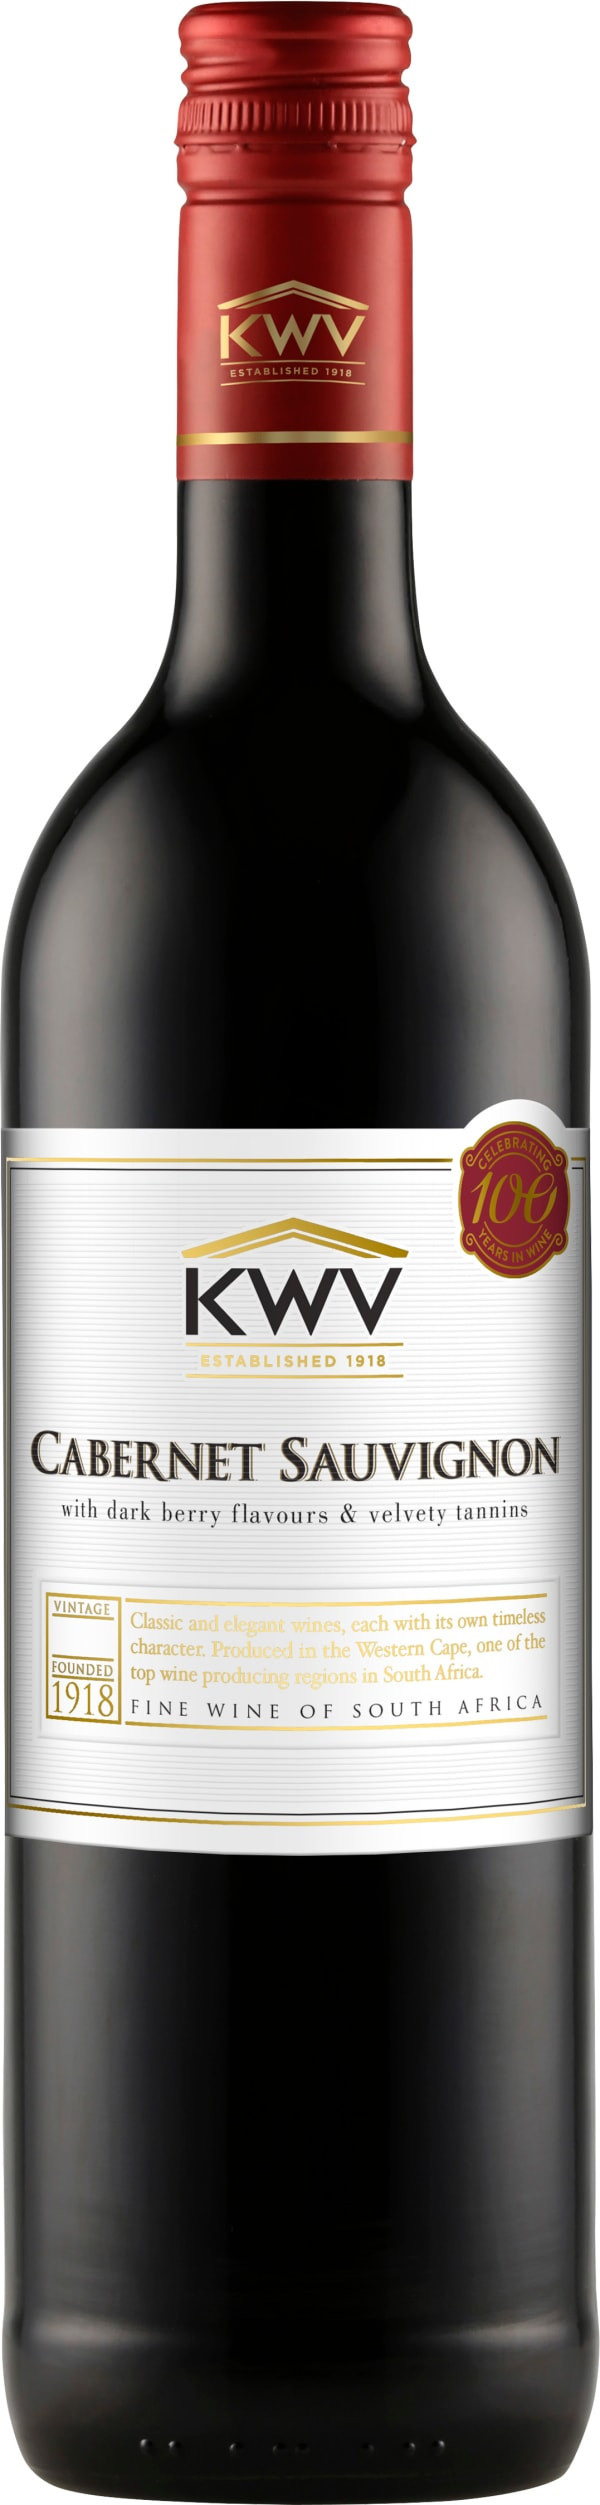 KWV Classic Collection Cabernet Sauvignon 2018